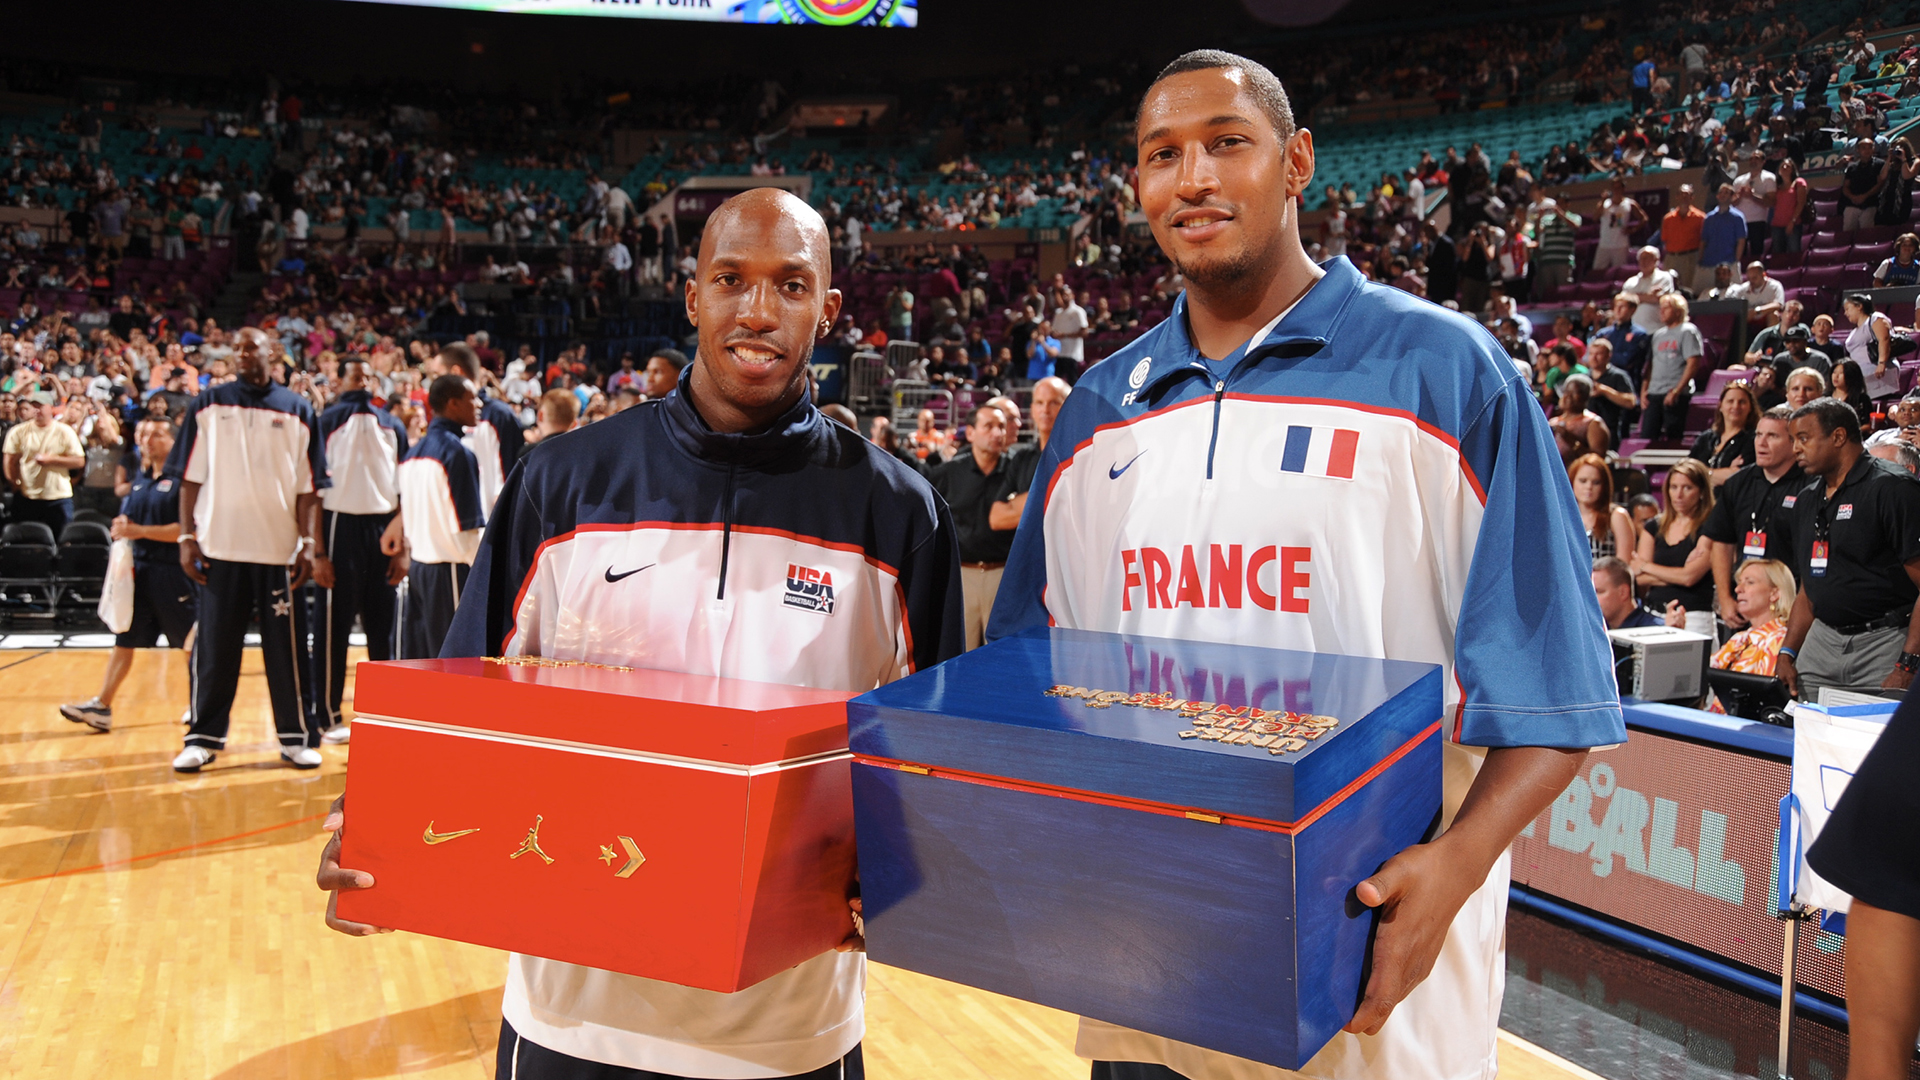 Chauncey Billups and a French basketball player